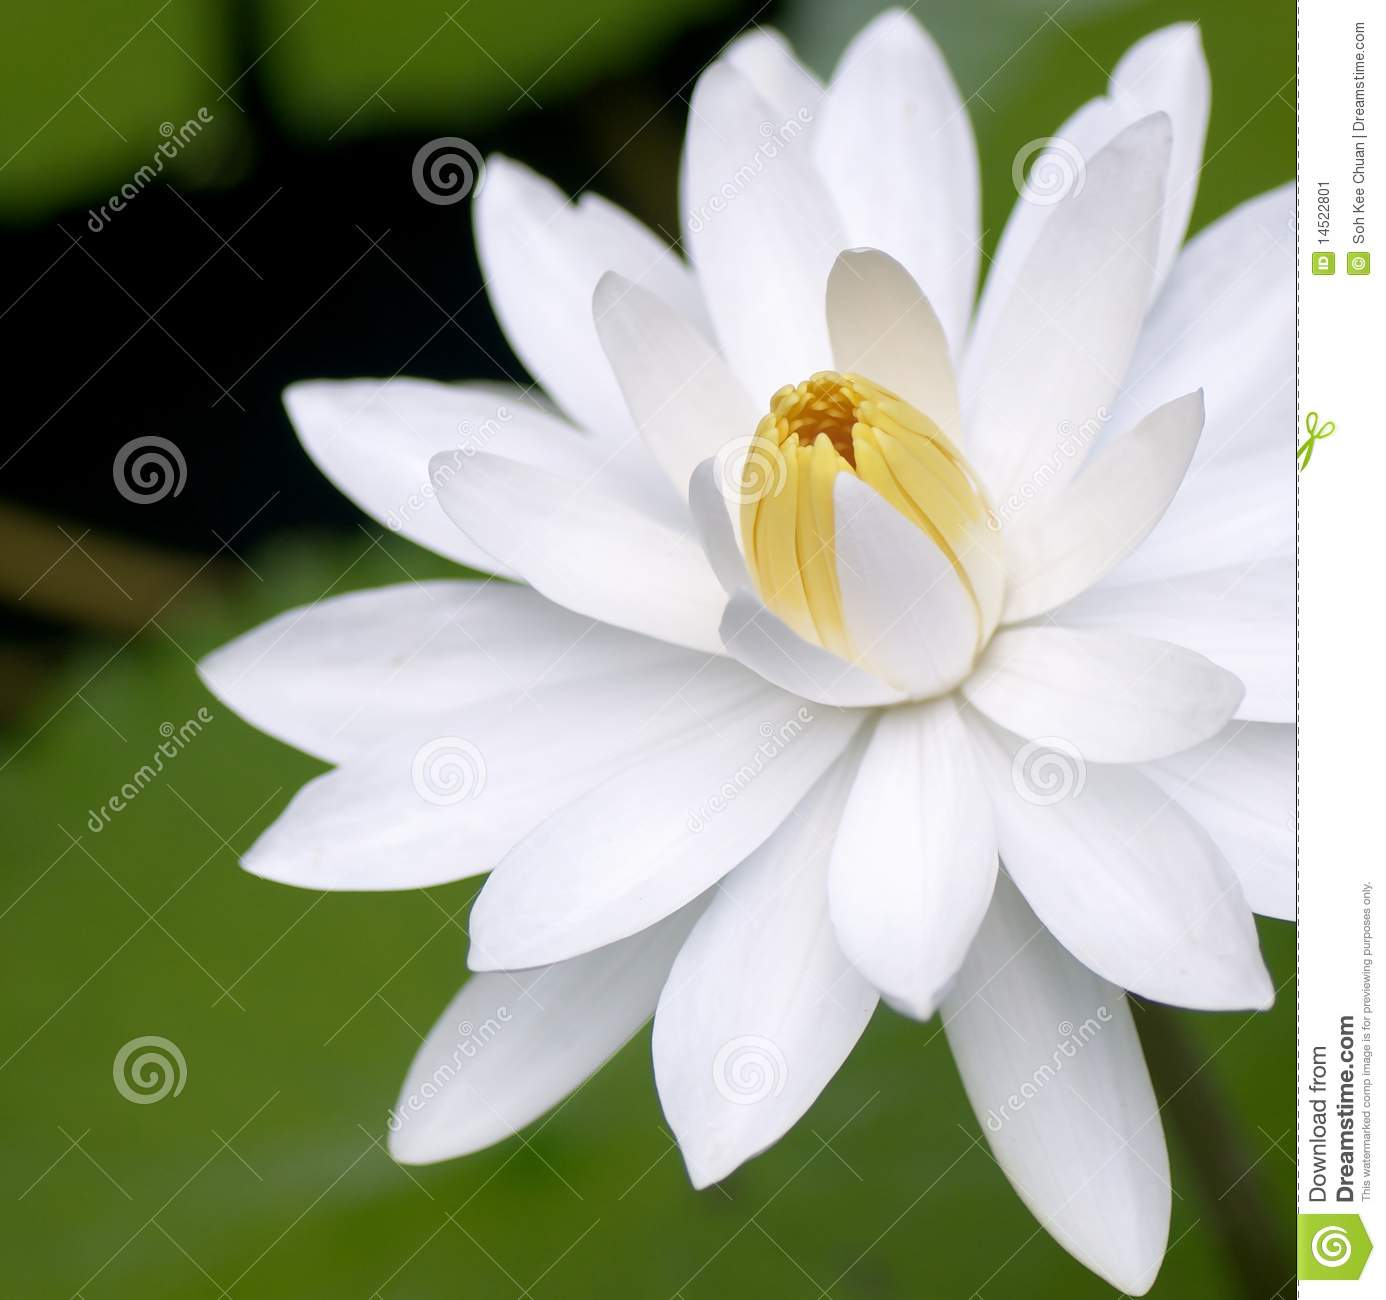 Blooming white water lily flower stock image image of blooming blooming white water lily flower izmirmasajfo